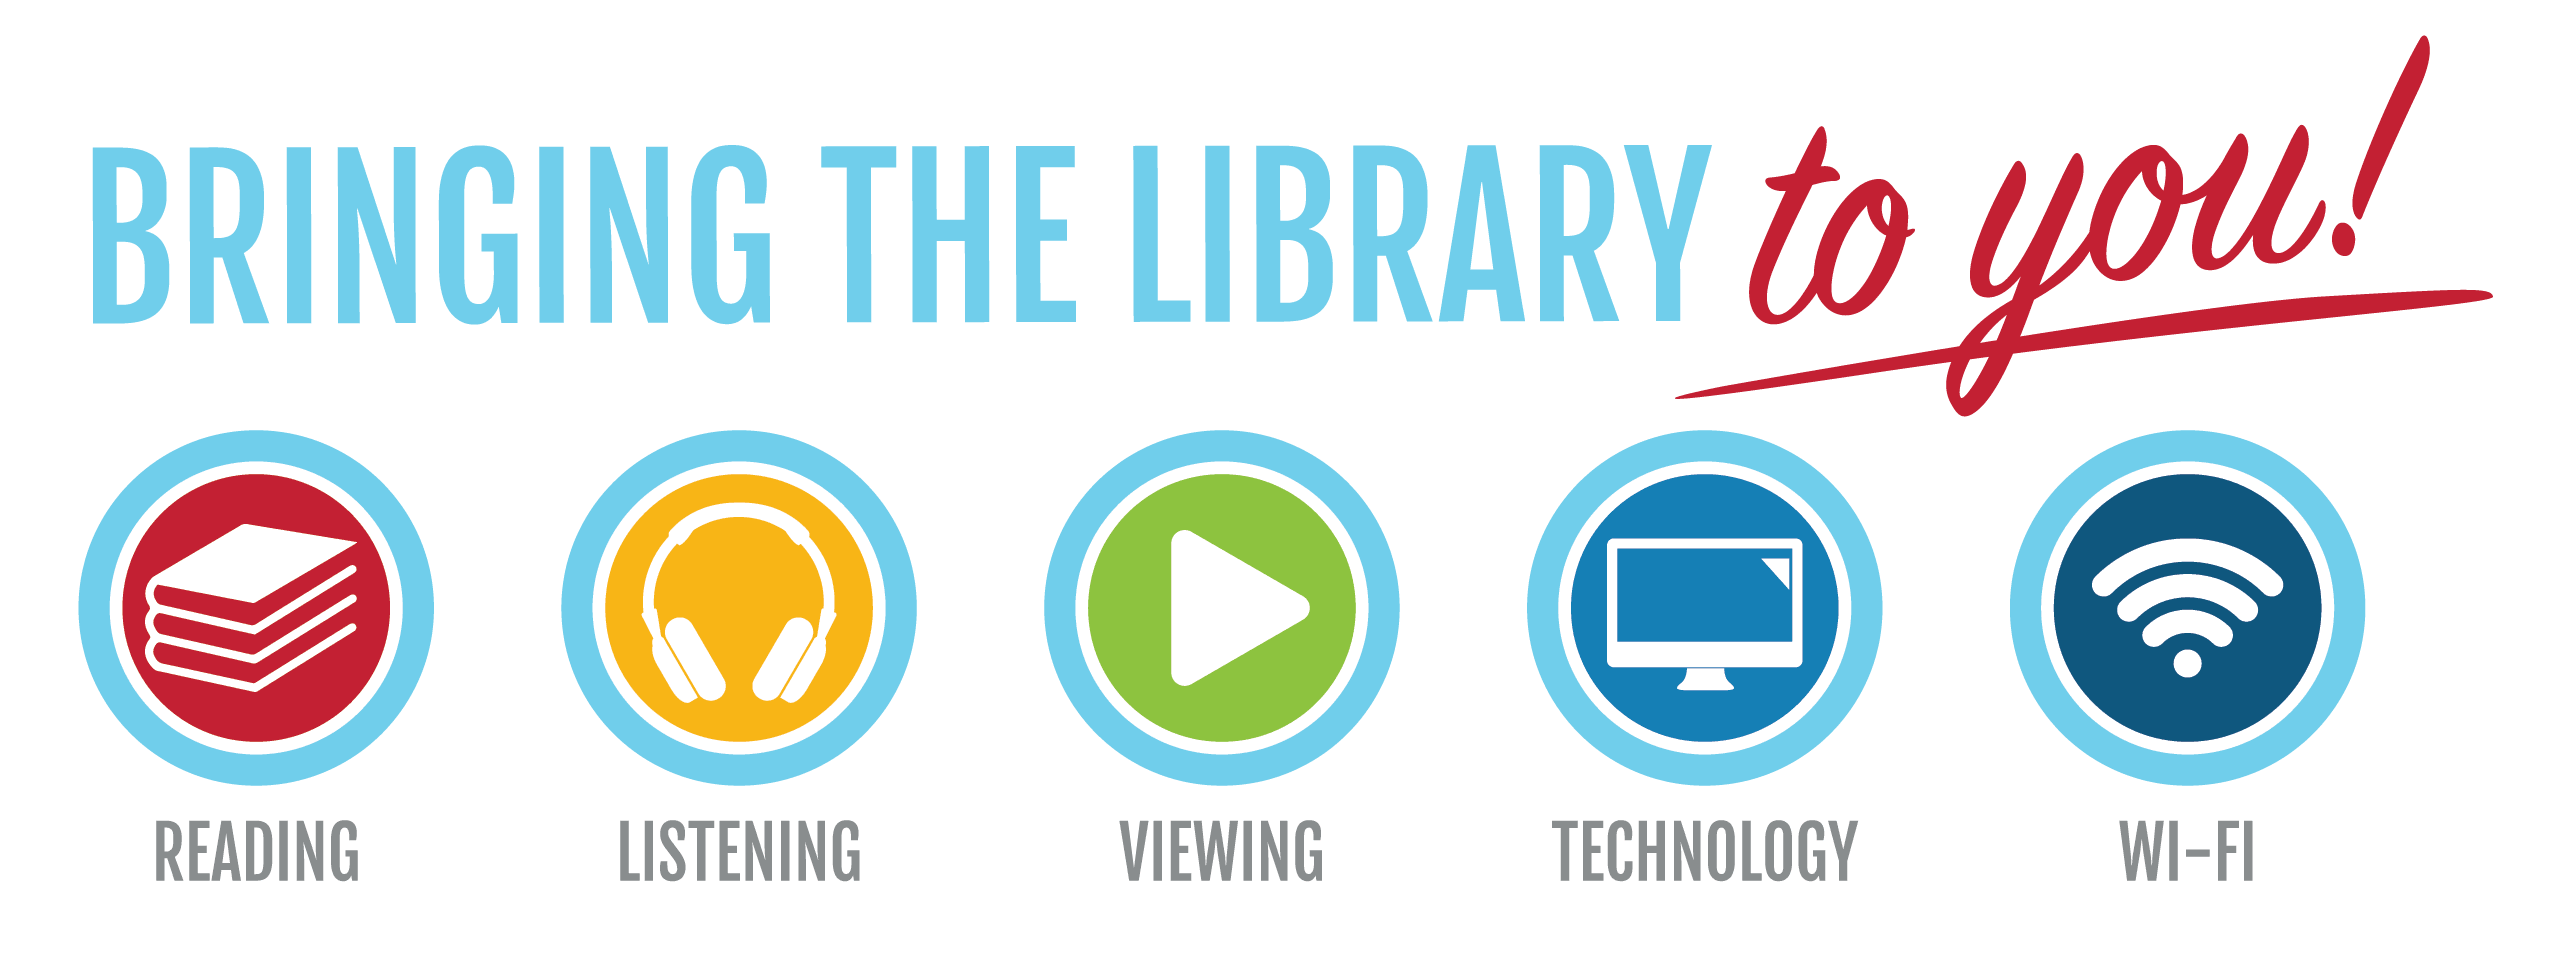 Bringing the Library to You Statement with icons for reading, listening, viewing, technology, WIFI